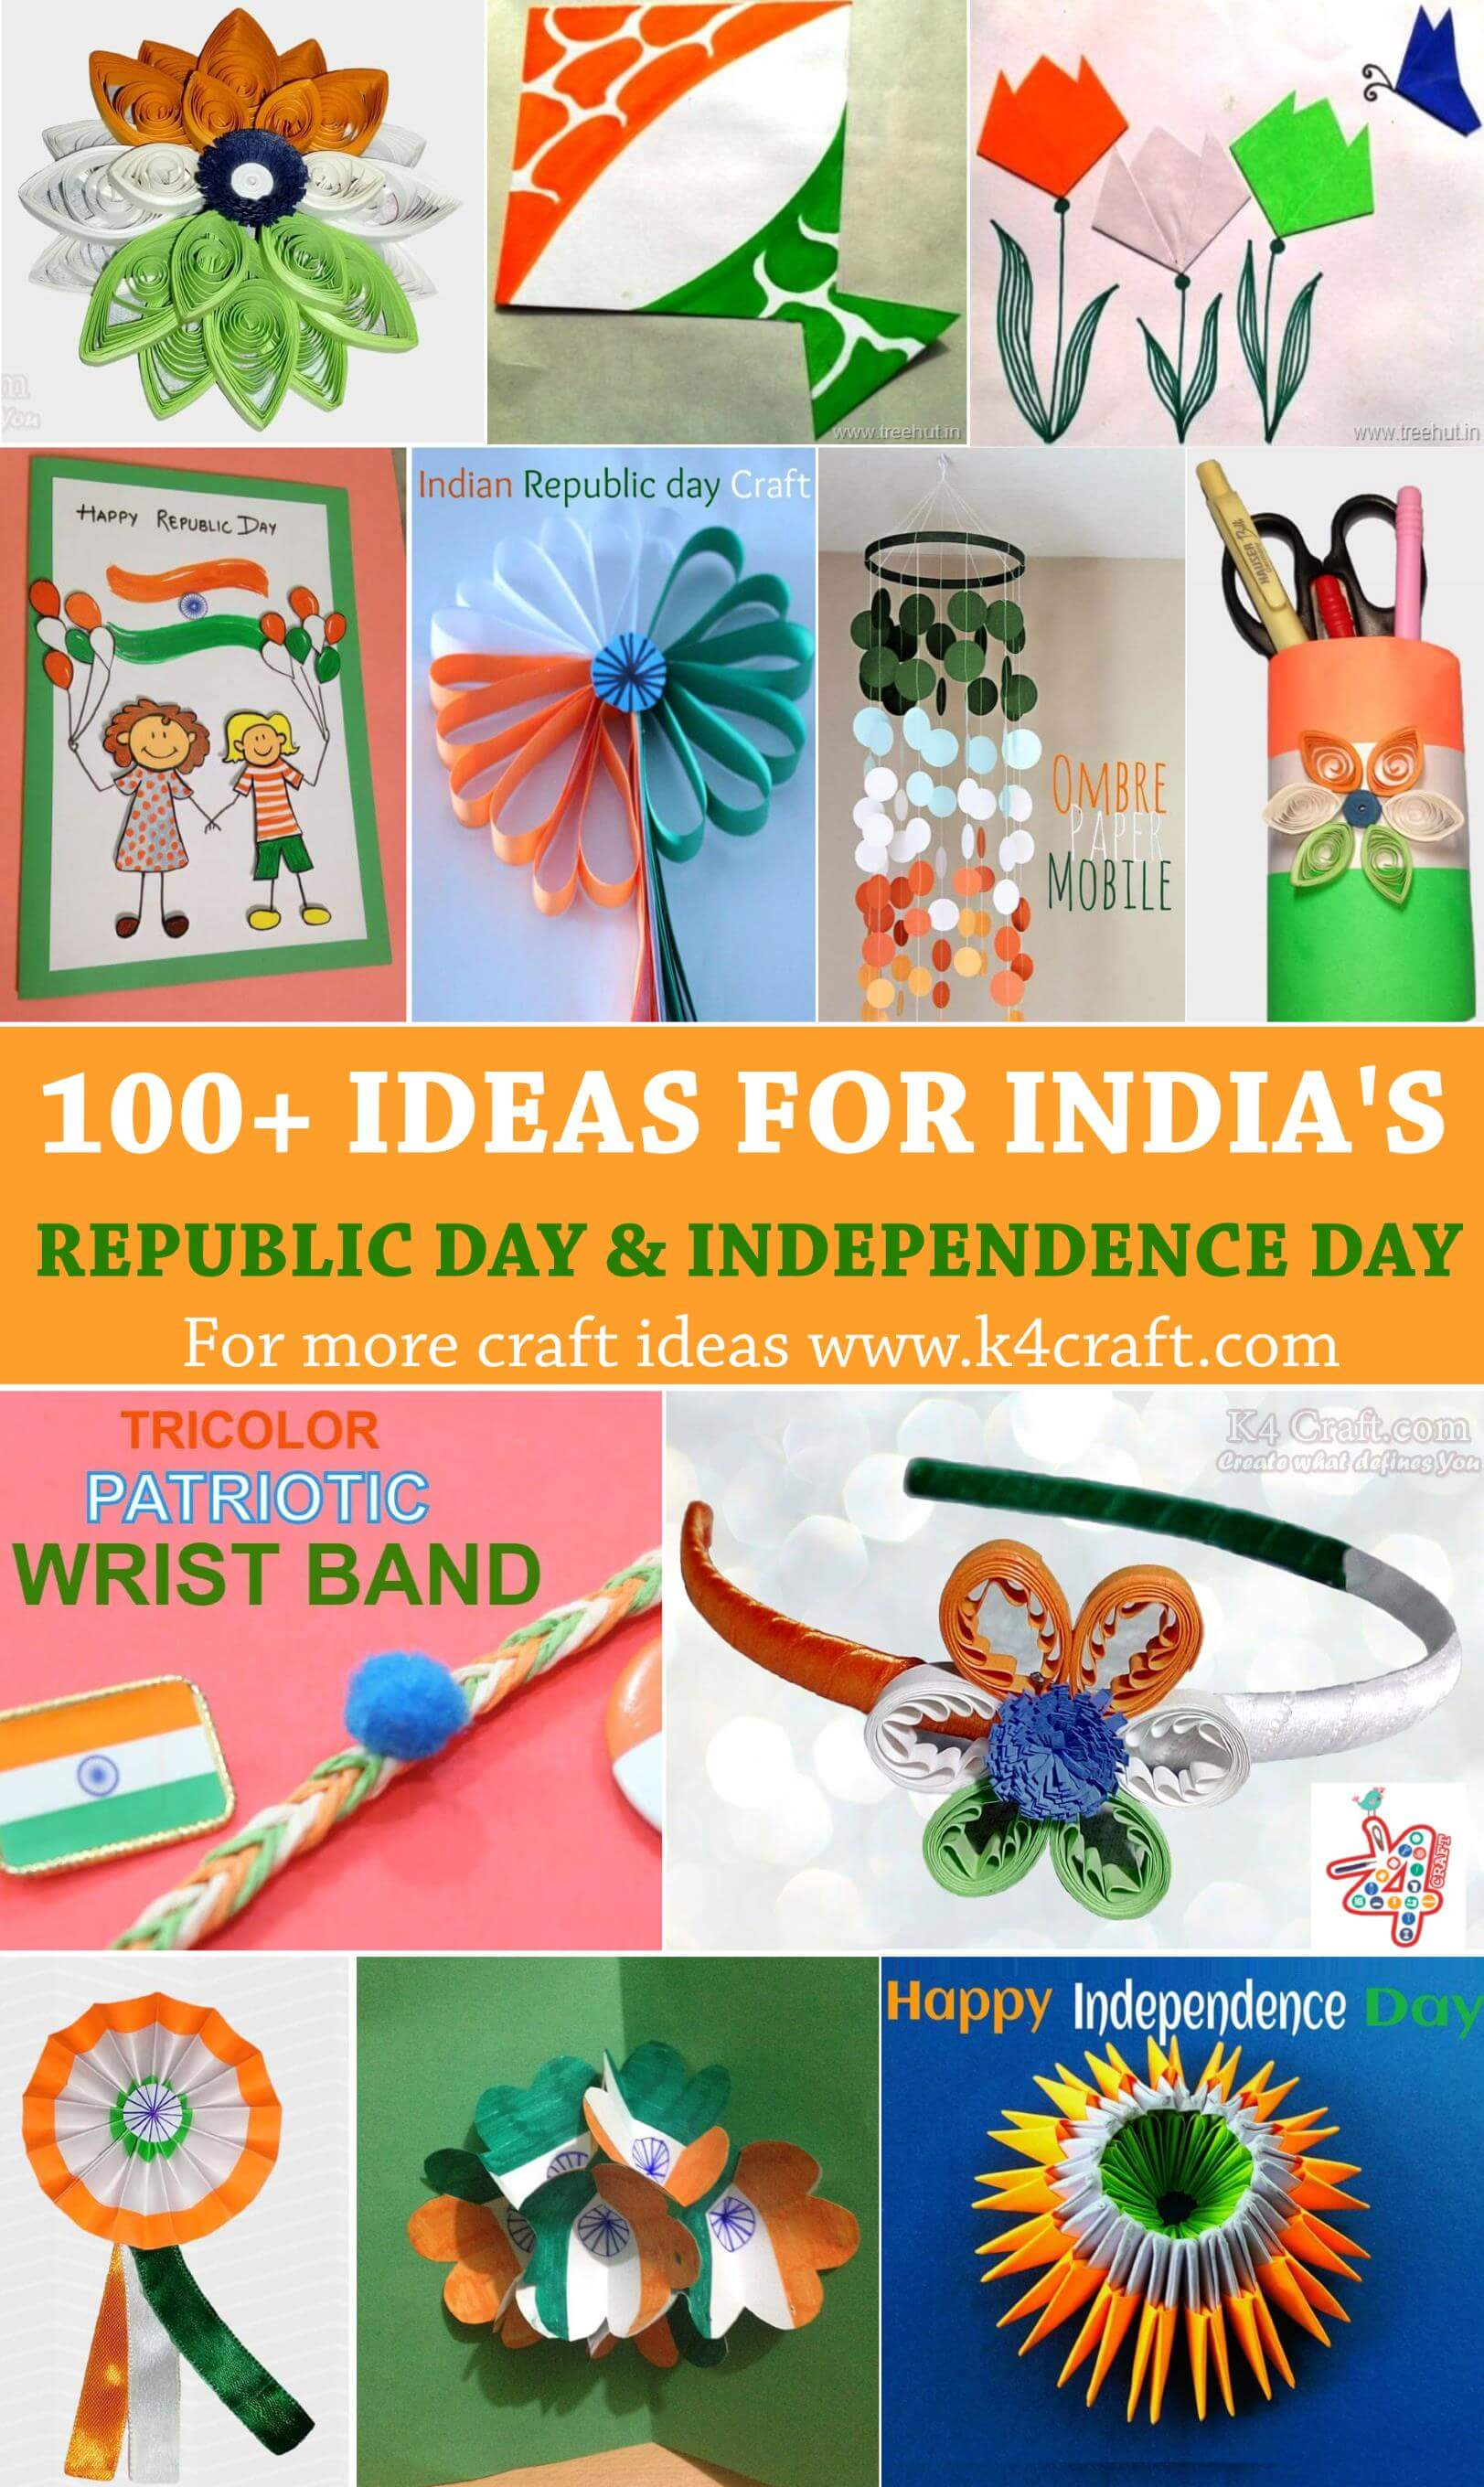 DIY Craft Ideas for India Independence Day and Republic Day